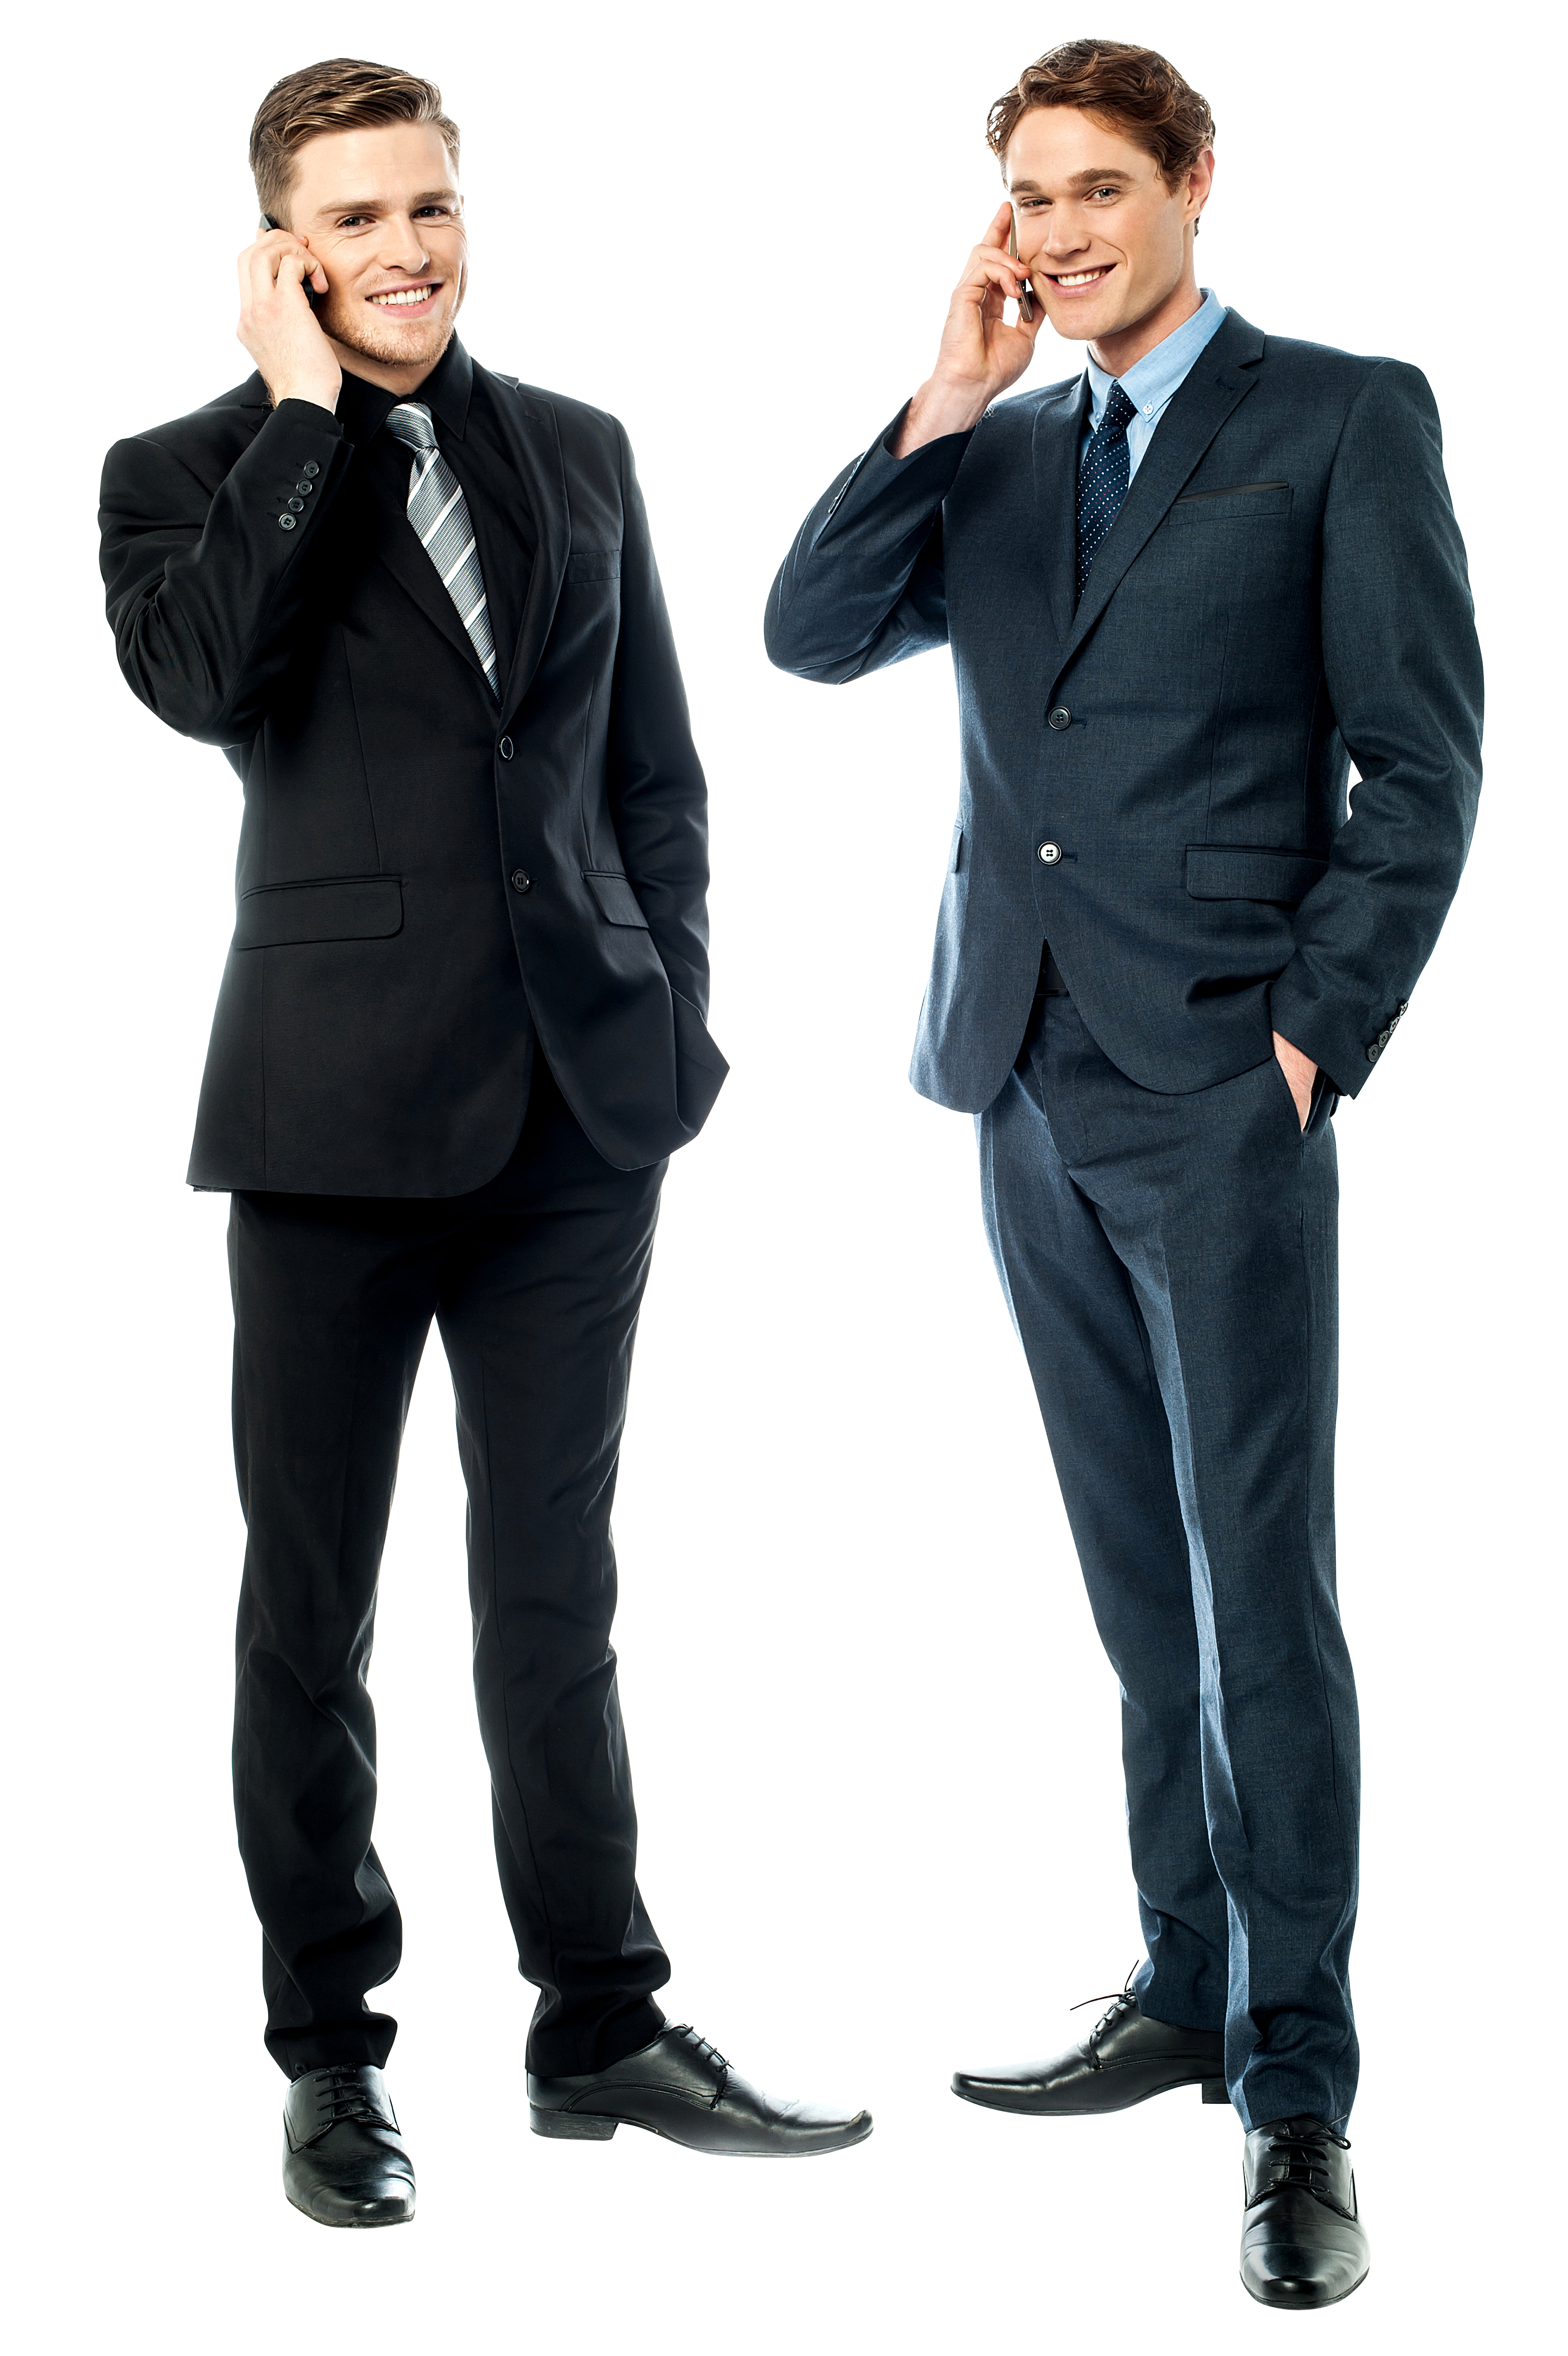 Business Png Image Png Png Images Image